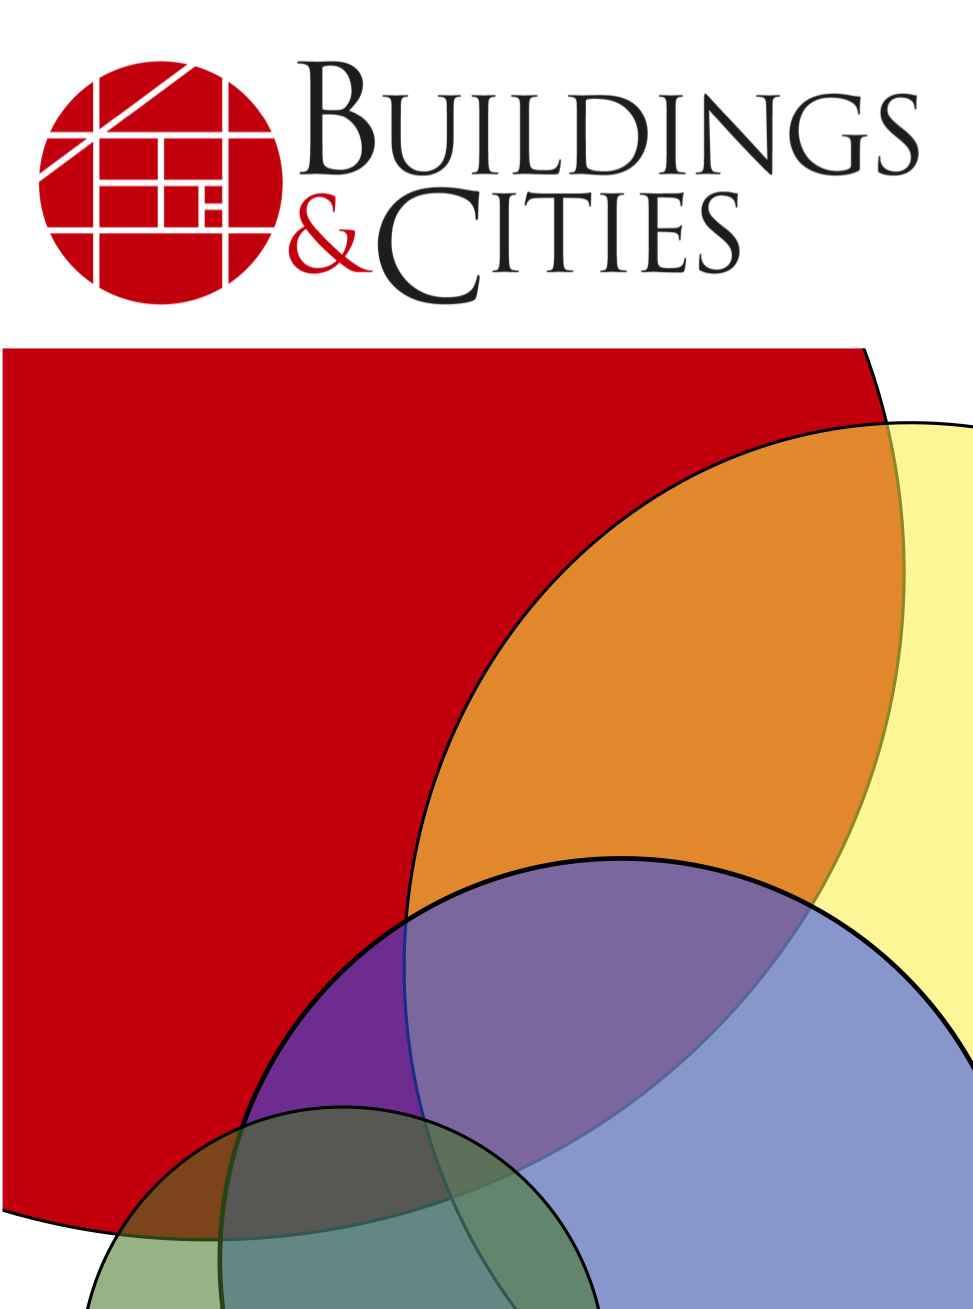 cover image for the Buildings and Cities journal